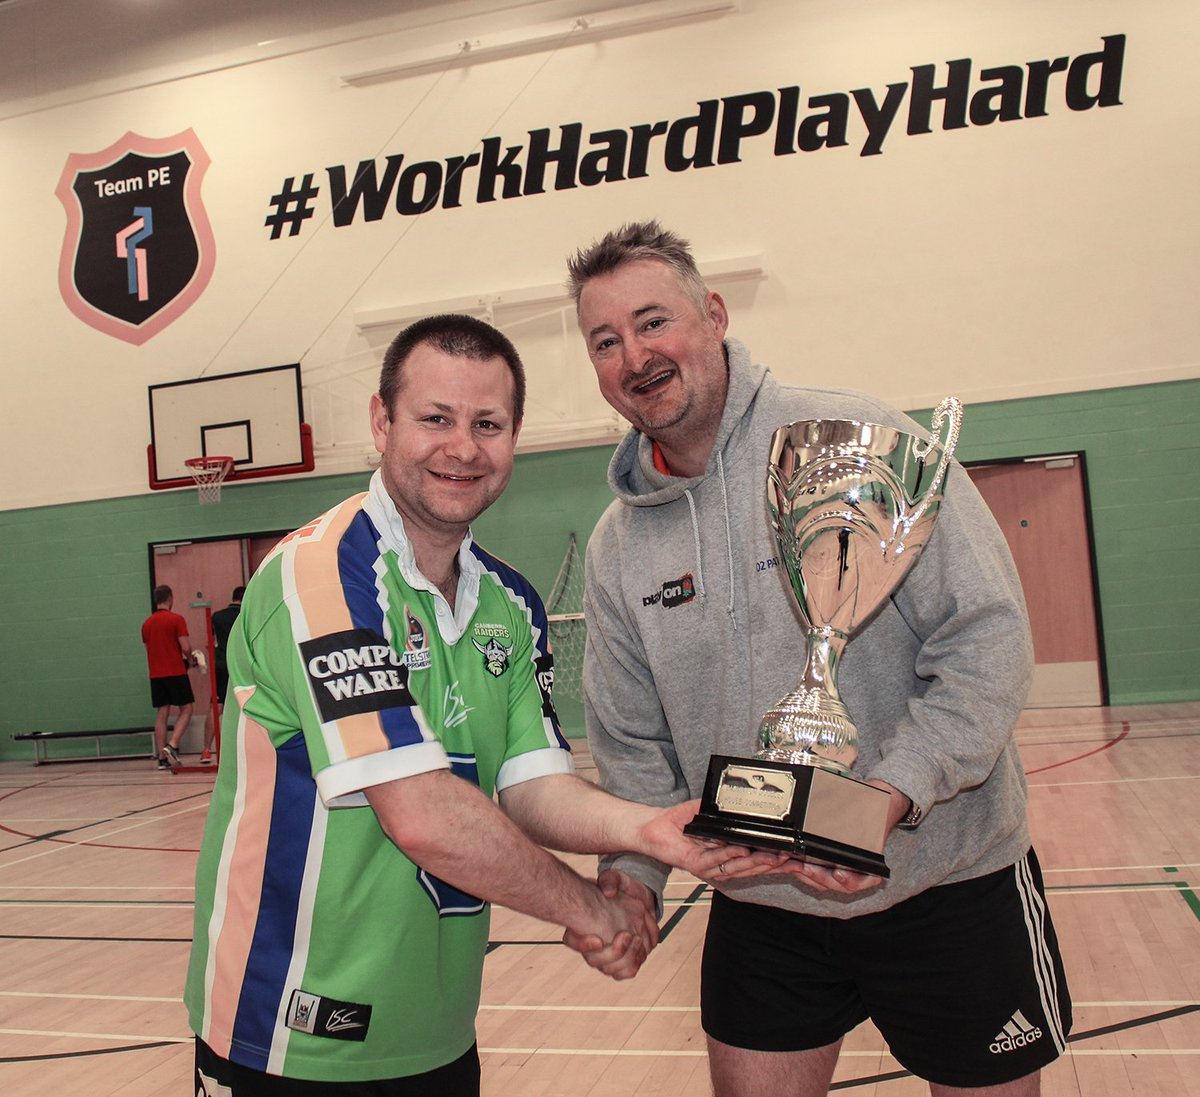 Winifred Holtby On Twitter Staff Governor Mr Horsley Presenting The Trophy Once Again To Head Of Hedoncrofte Mr Ziebeck Badders Teamwha